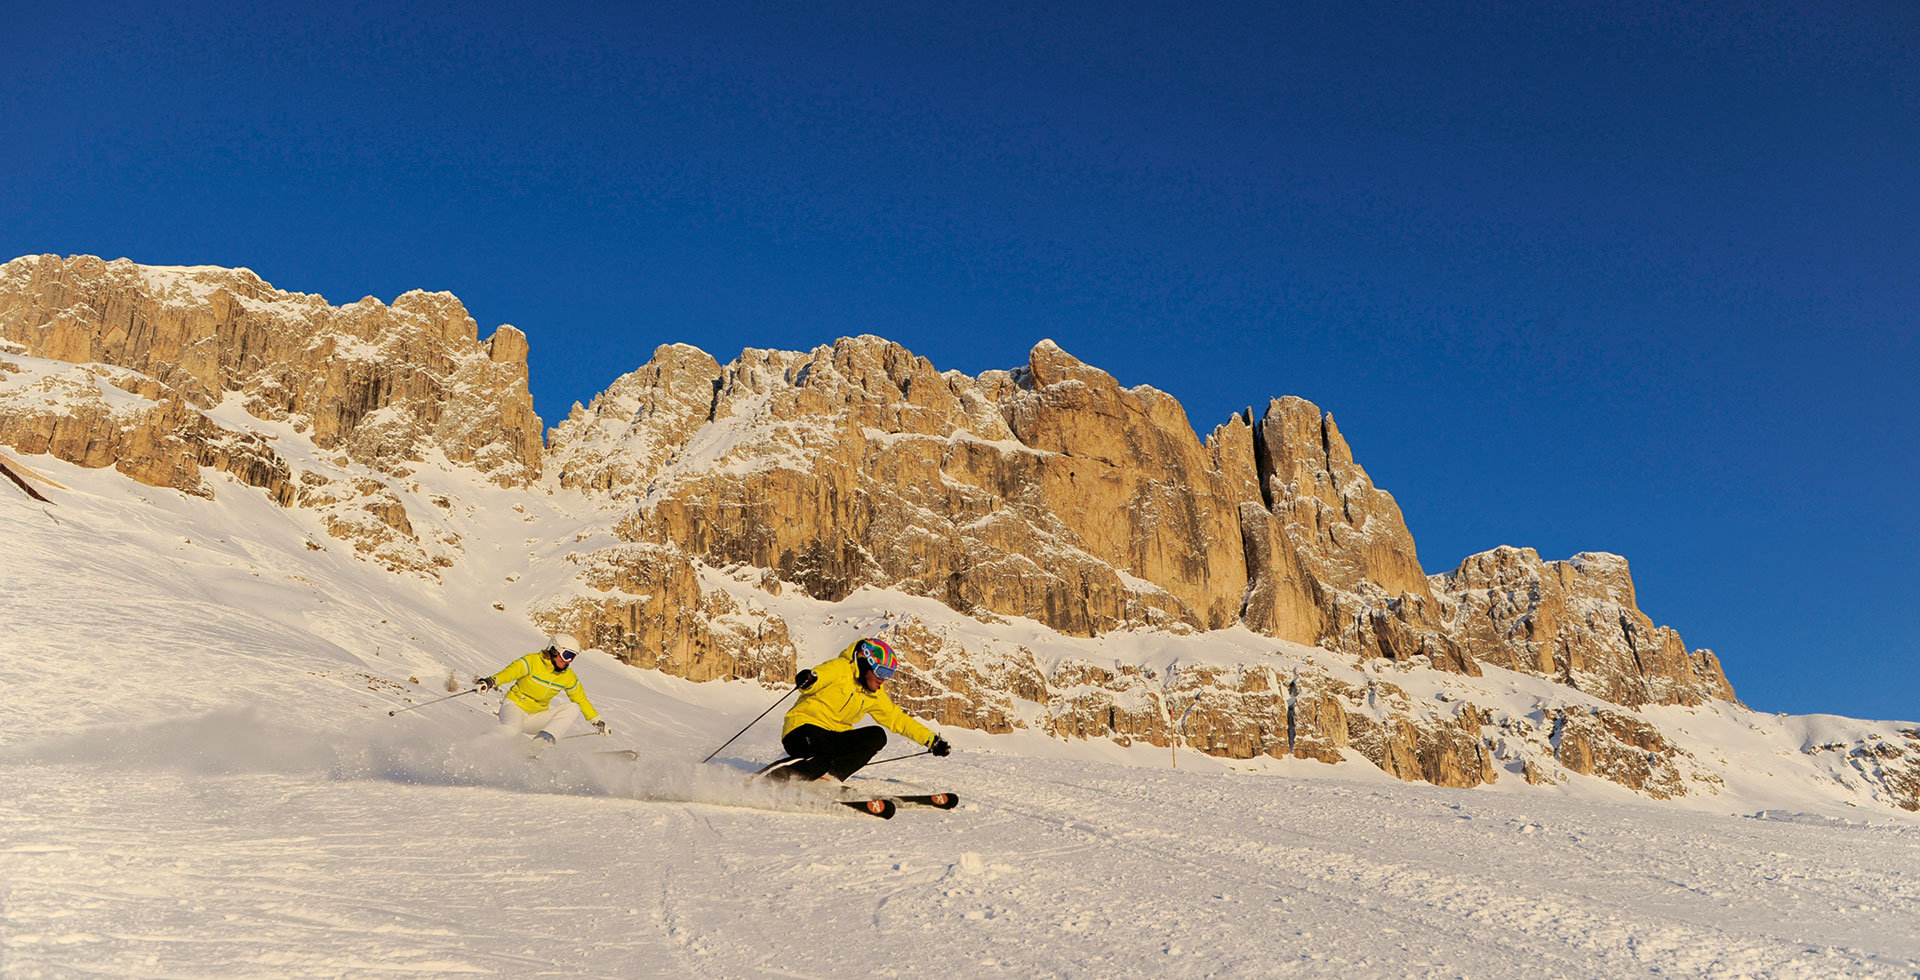 Skiing in the heart of the Dolomites